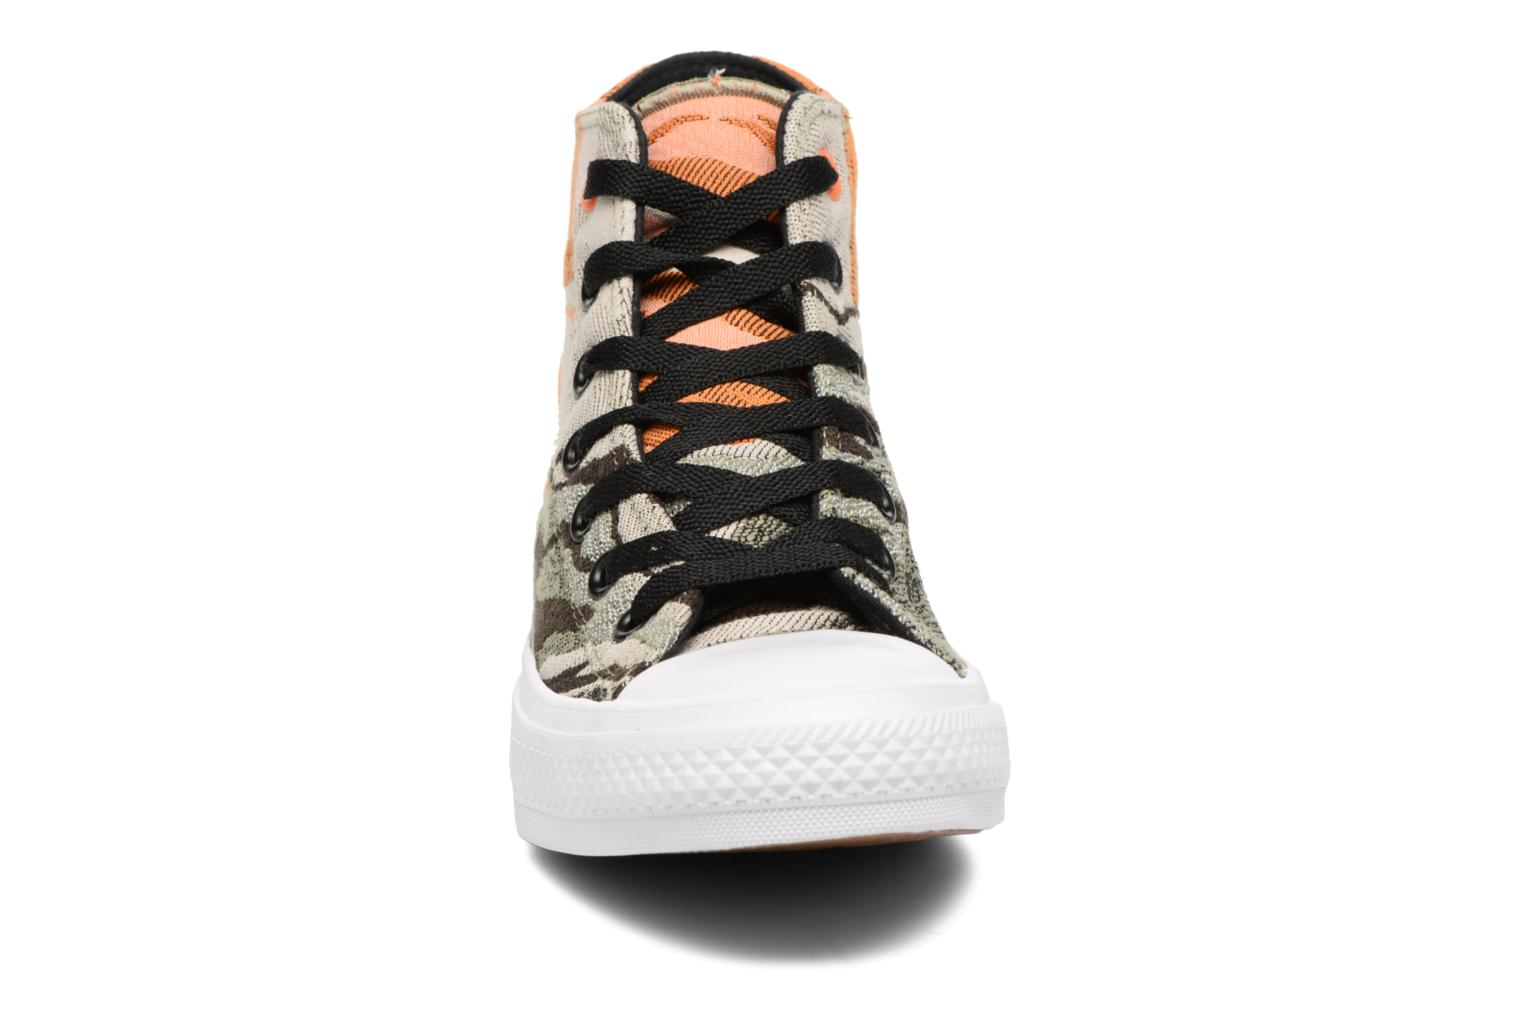 Chuck Taylor All Star II Hi W Fatigue Green/Vivid Orange